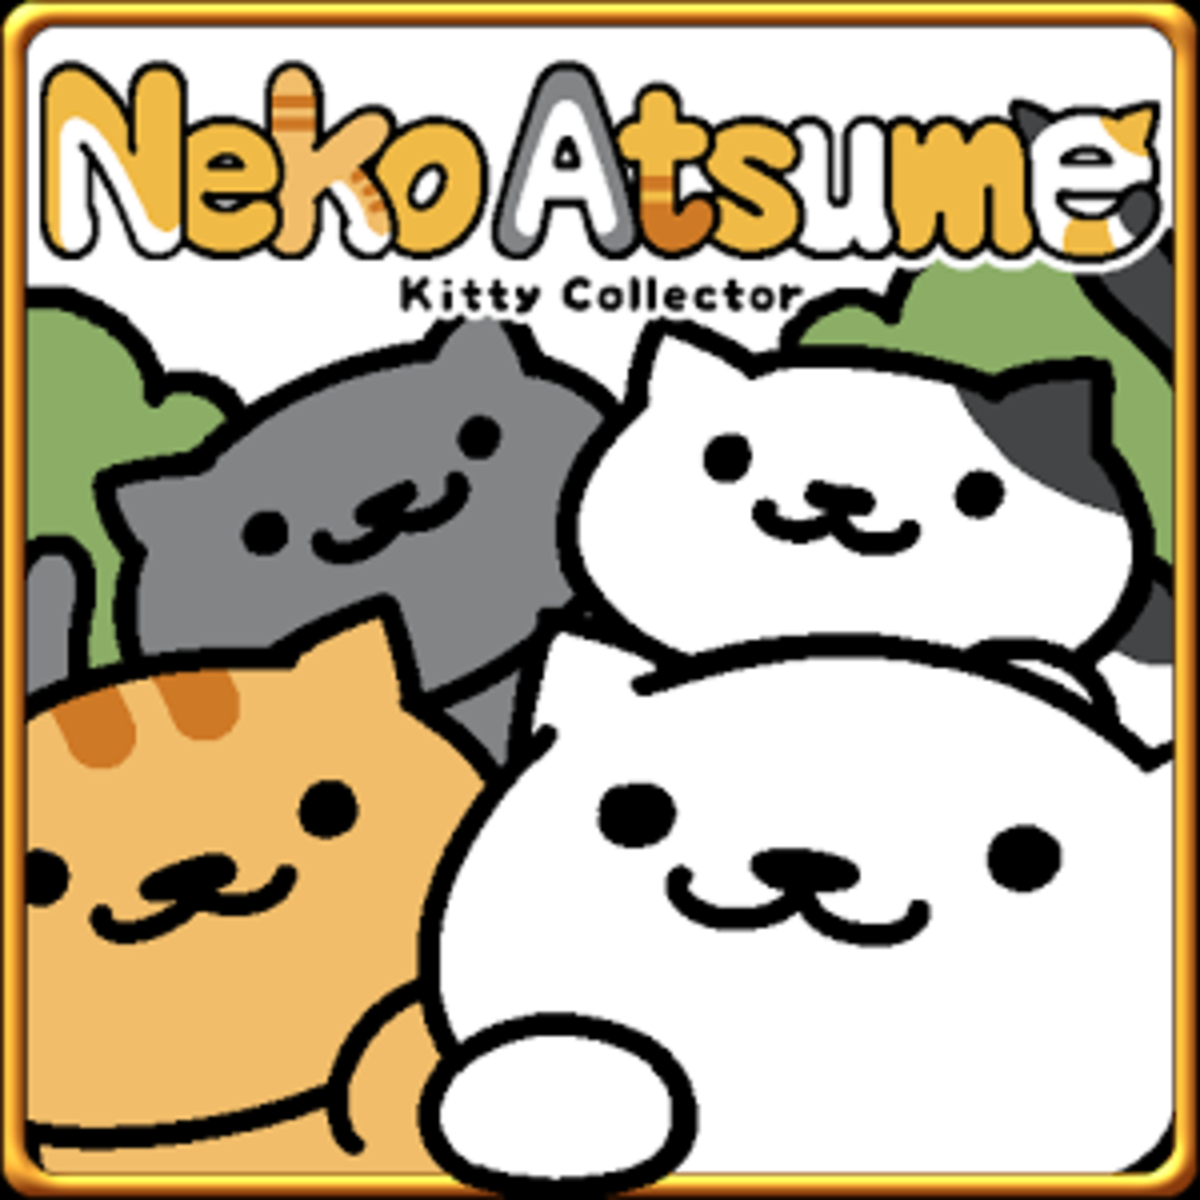 """Neko atsume logo"" by Source. Licensed under Fair use via Wikipedia - https://en.wikipedia.org/wiki/File:Neko_atsume_logo.png#/media/File:Neko_atsume_logo.png"